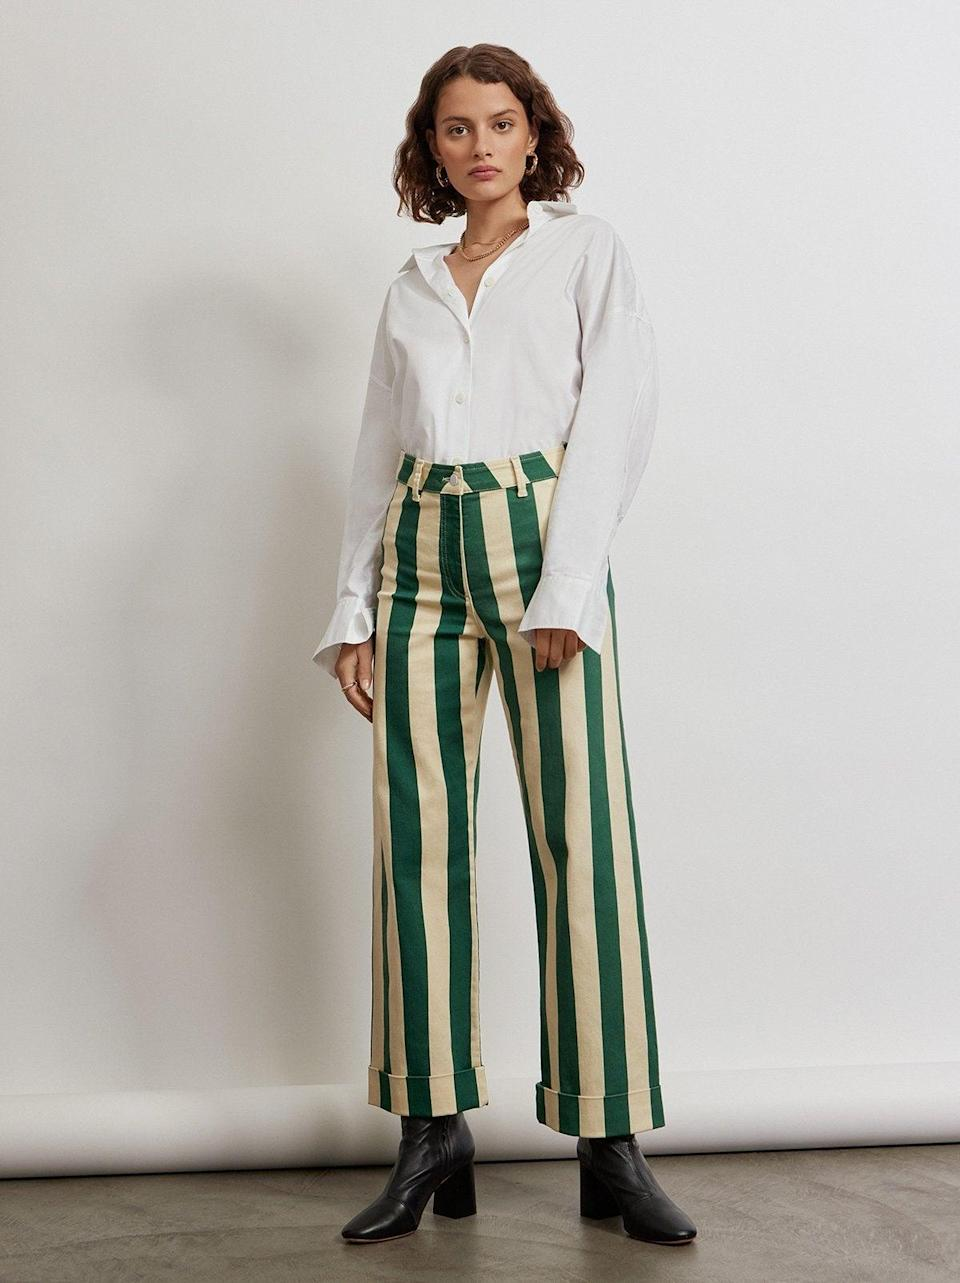 """<br><br><strong>Kitri x Jessie Bush</strong> Joey Green Striped Trousers, $, available at <a href=""""https://kitristudio.com/products/joey-green-striped-trousers?variant=39520004636723"""" rel=""""nofollow noopener"""" target=""""_blank"""" data-ylk=""""slk:Kitri"""" class=""""link rapid-noclick-resp"""">Kitri</a>"""